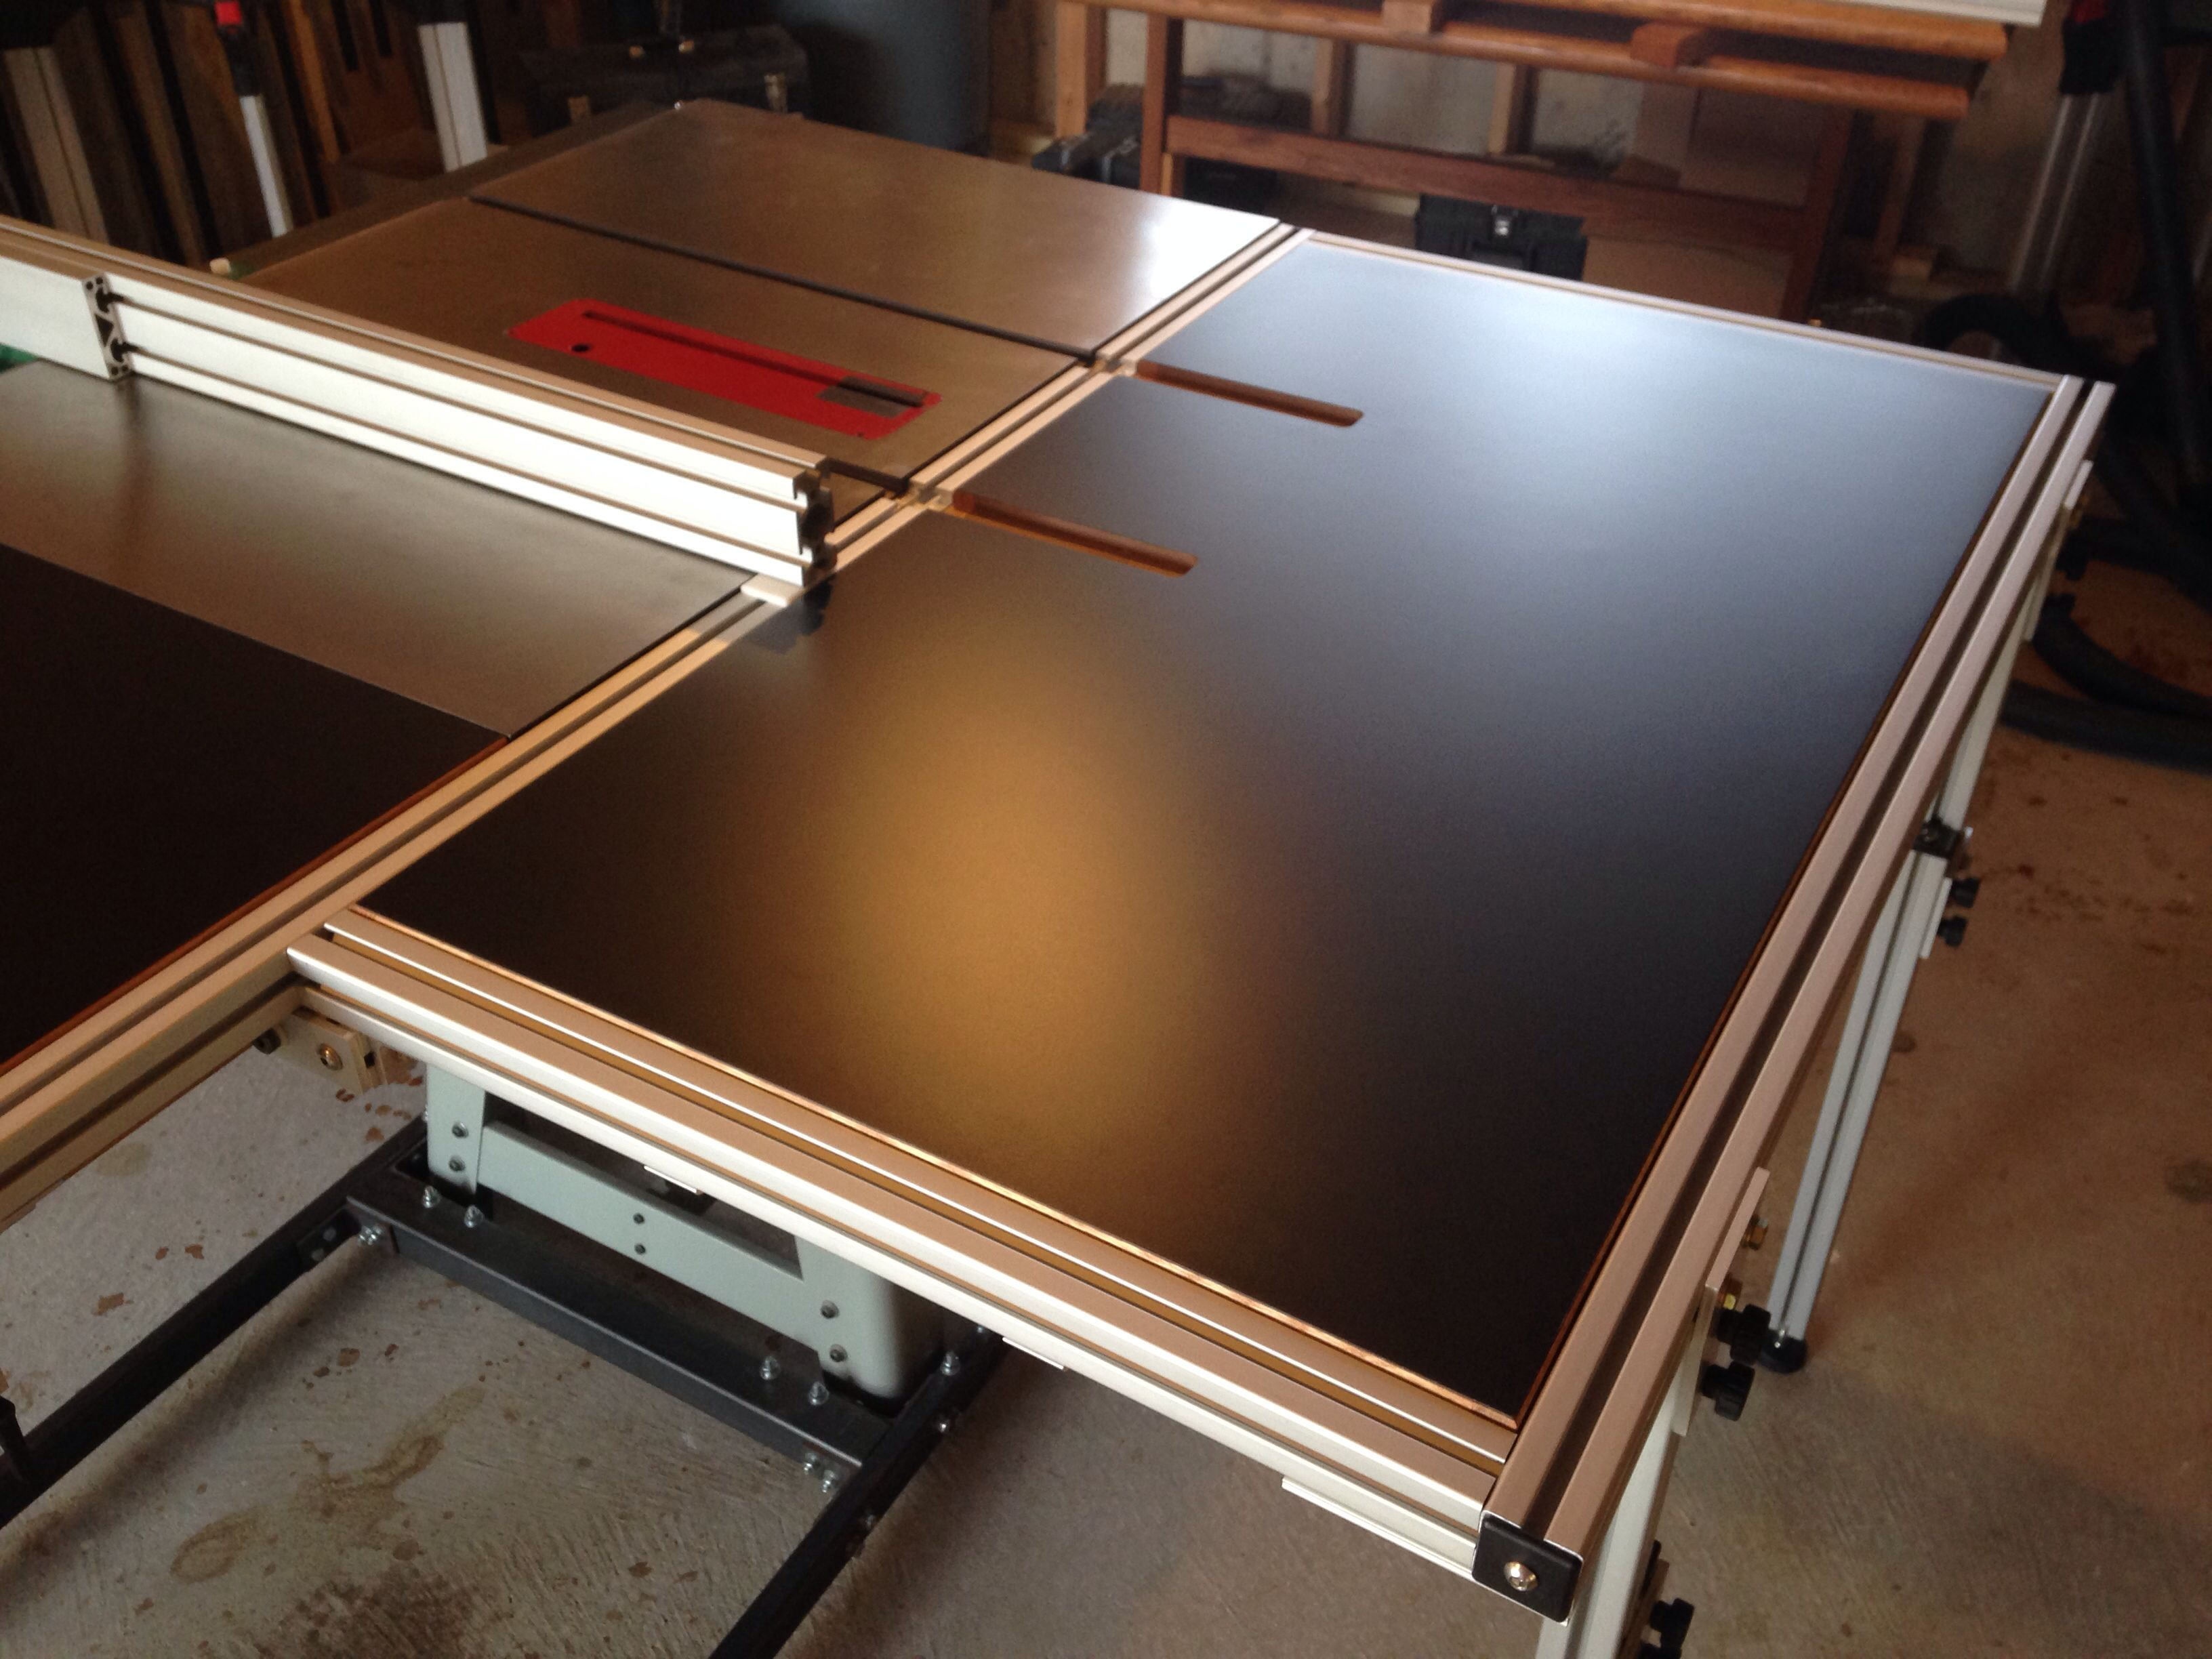 Table Saw Folding Outfeed Table Woodworking In 2019